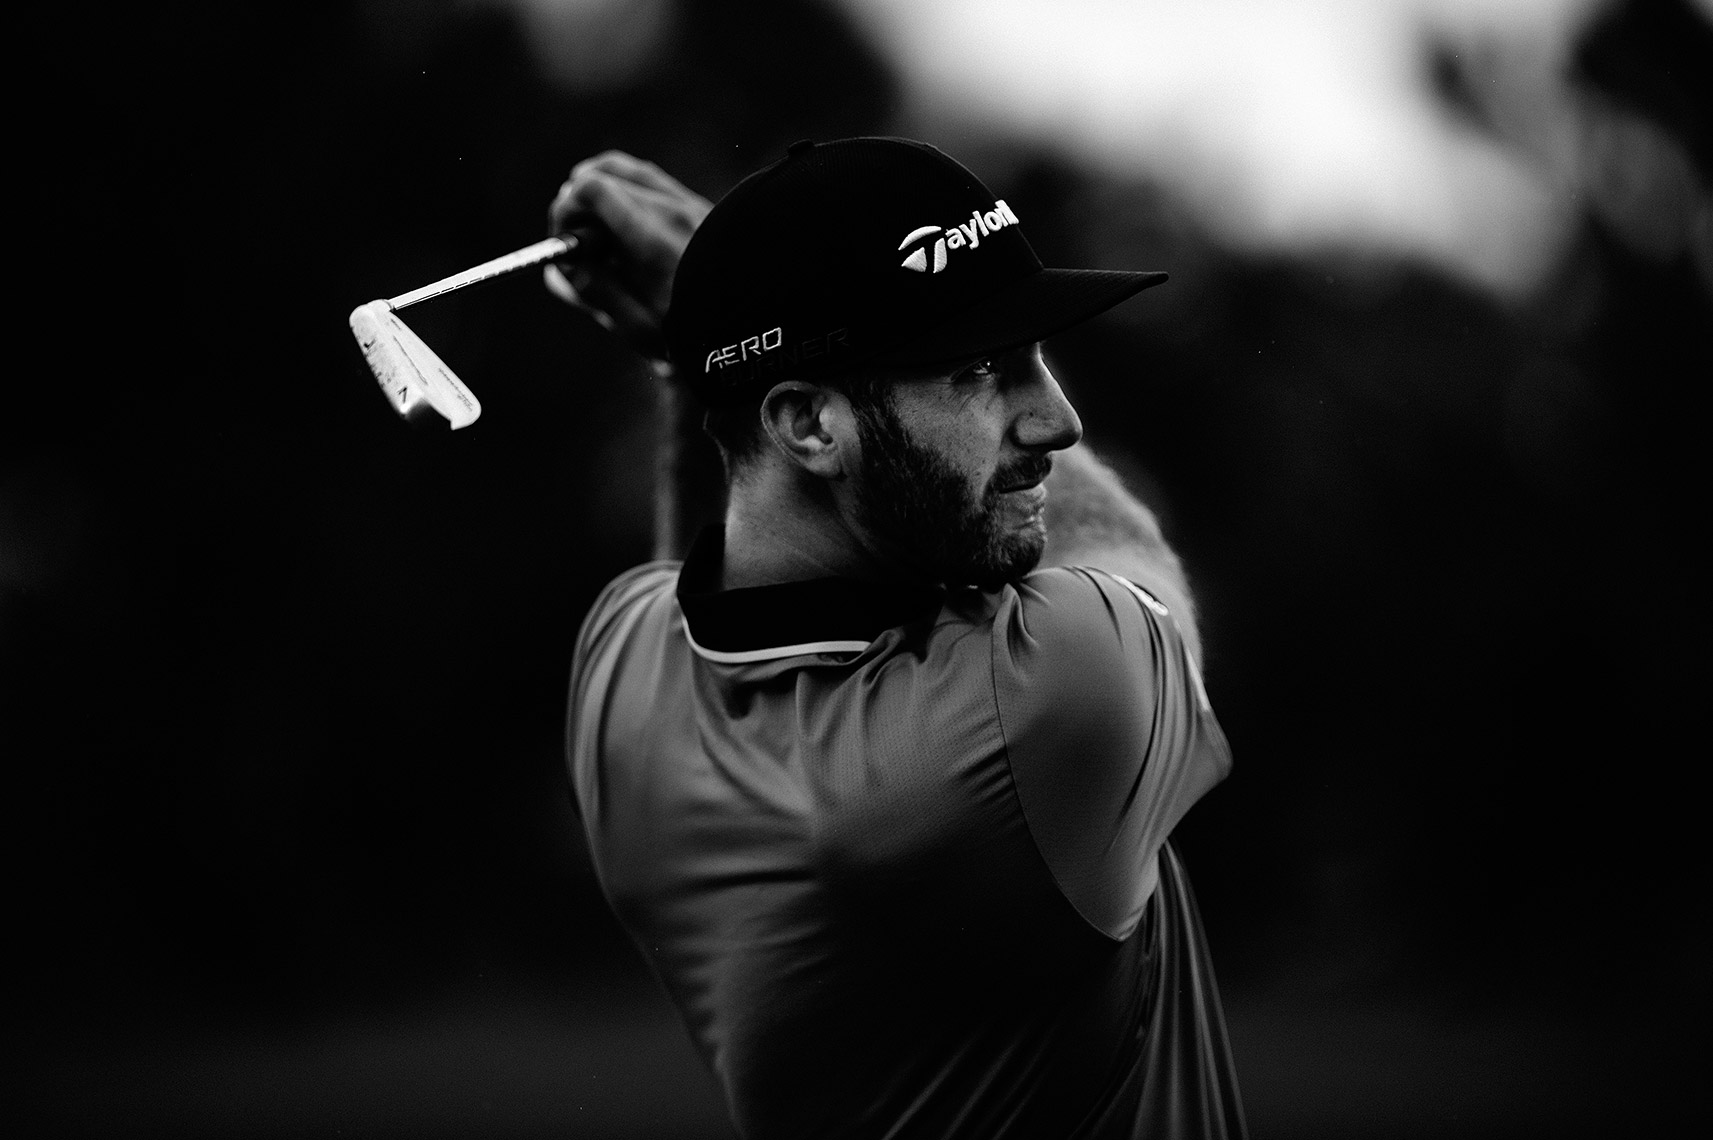 new-era-caps-john-schnack-photography-commercial-sports-photographer-san-diego-los-angeles-dustin-johnson-palm-beach-golf-photo-shoot-05